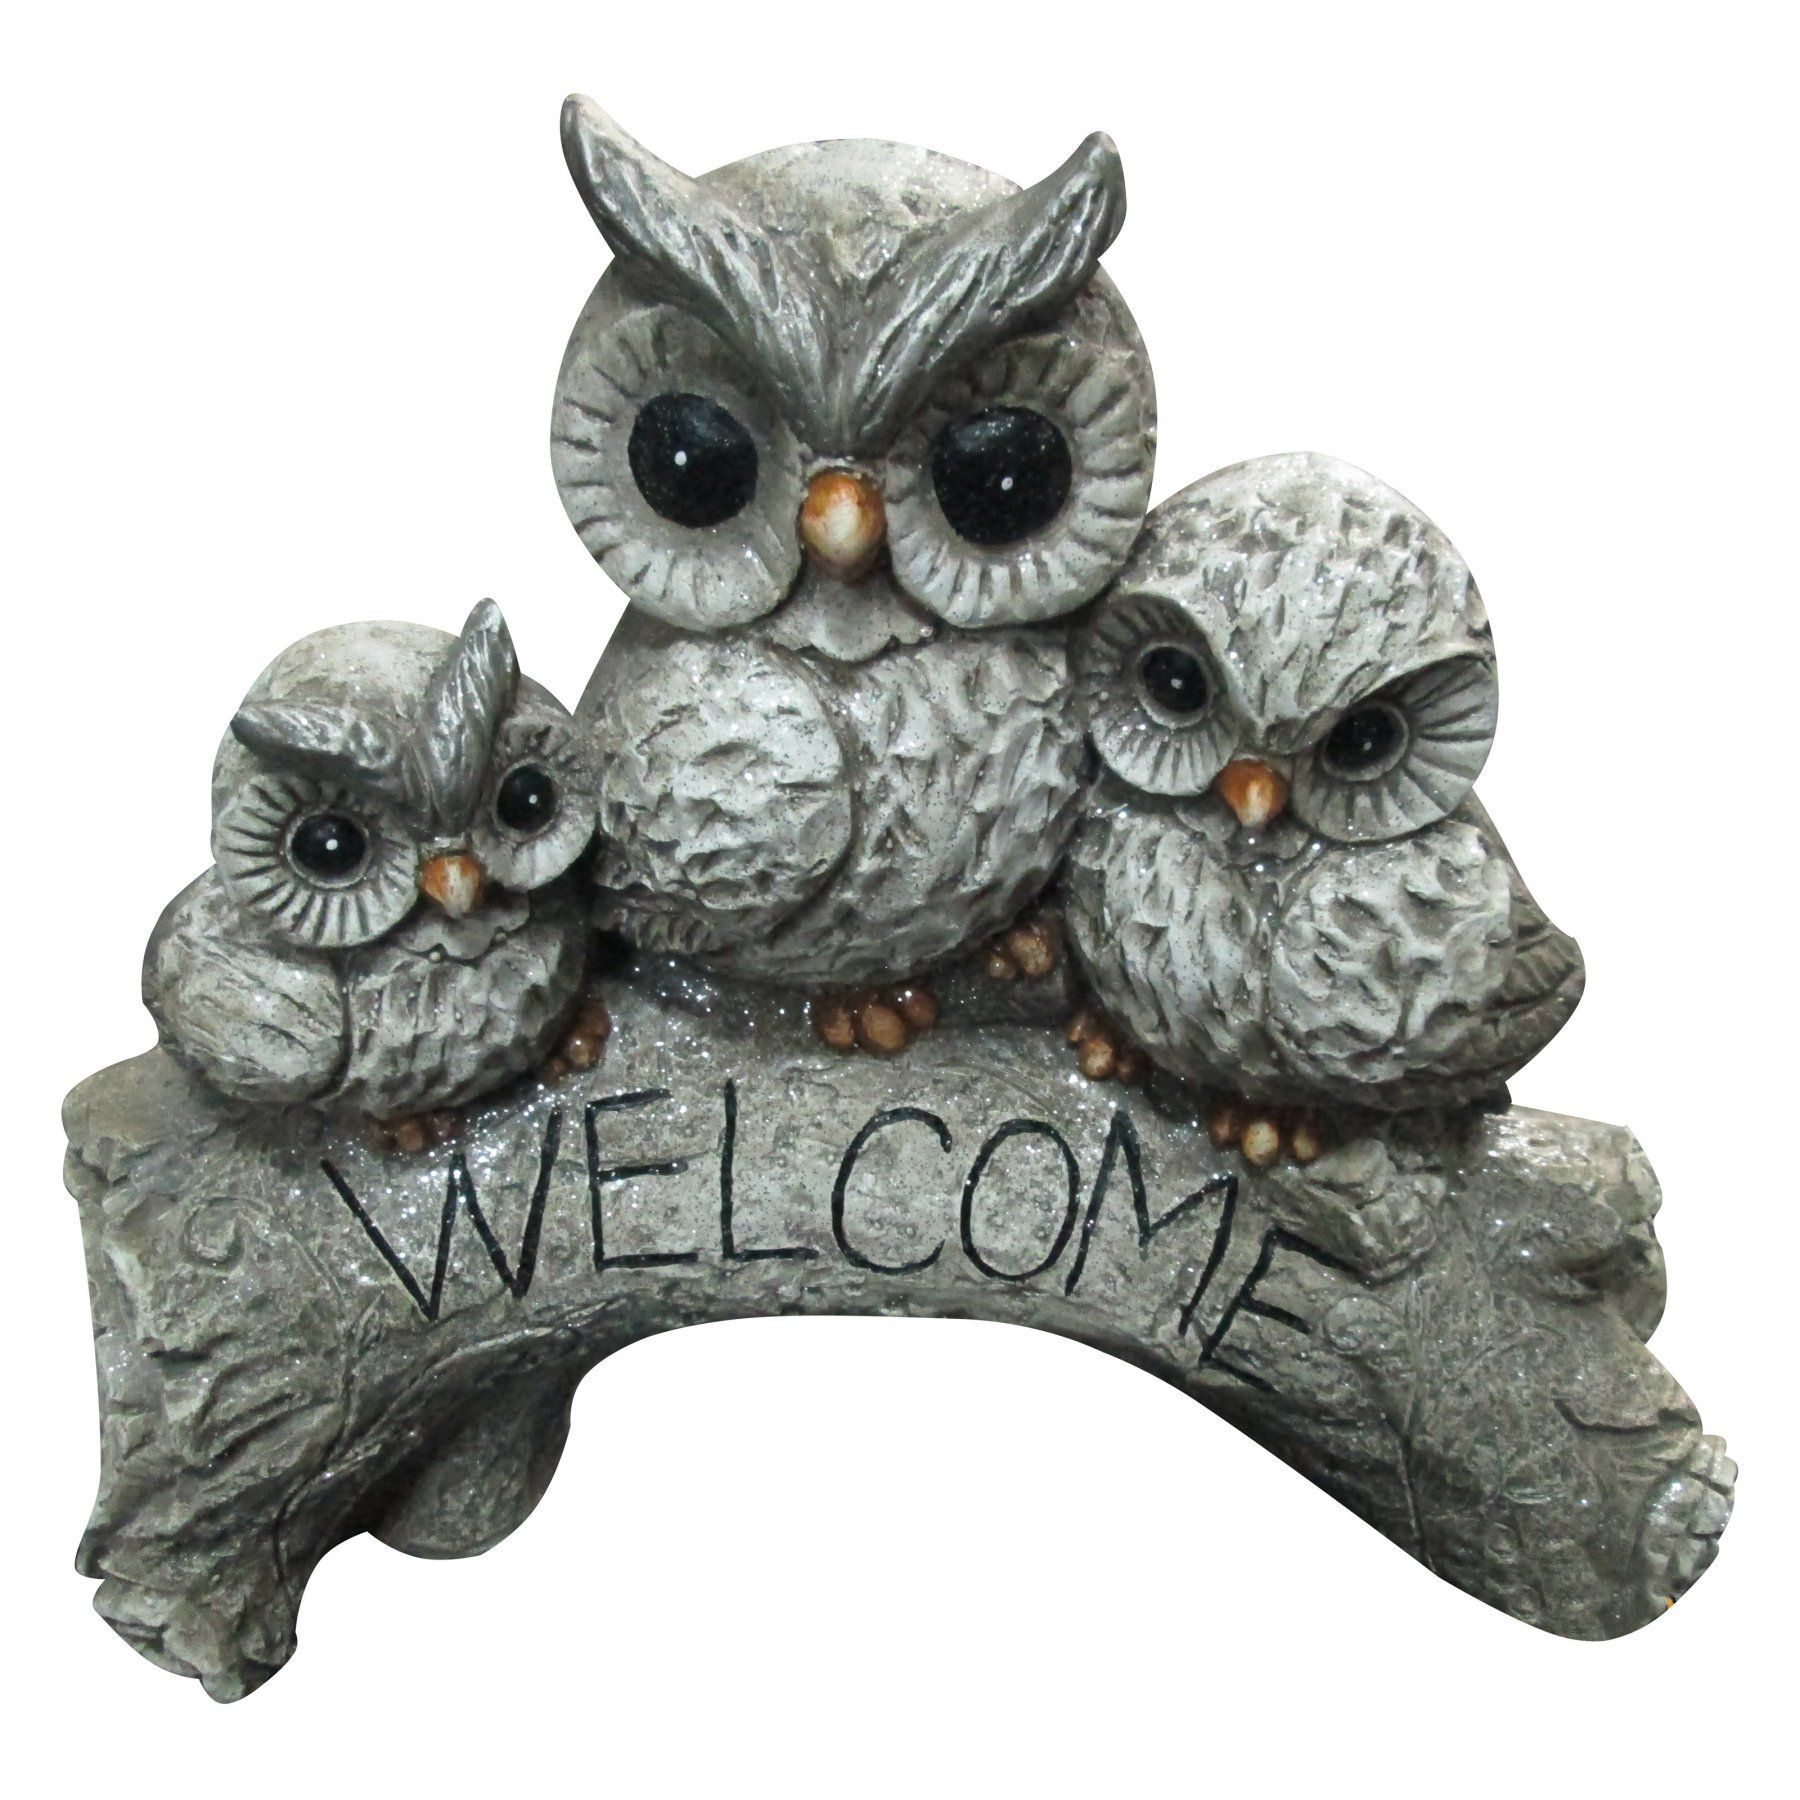 Welcome Statues Garden Alpine Corporation Alpine Owl Family Welcome Statue Qwr442